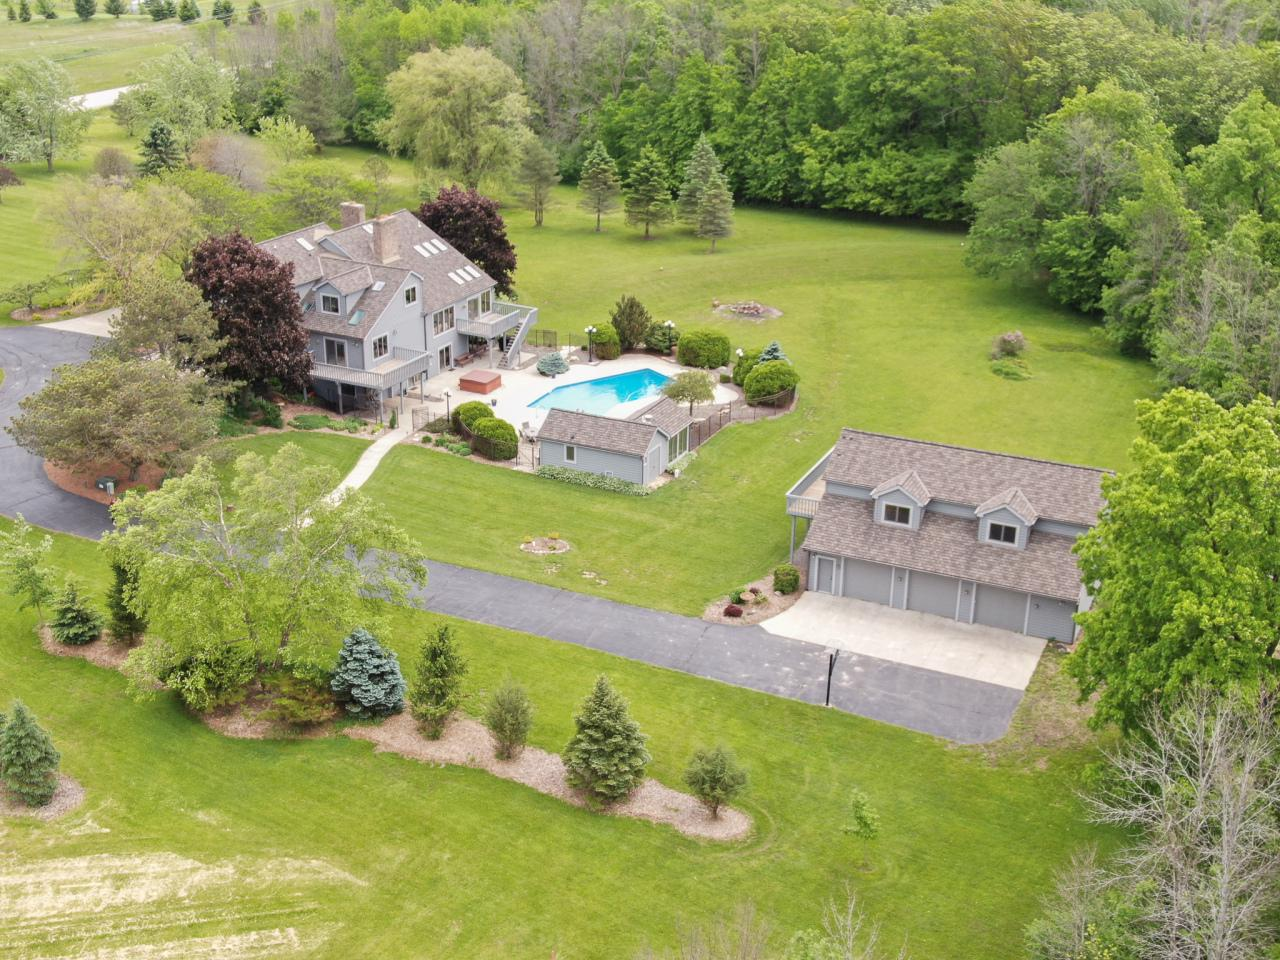 Quality Keshemberg built private 5.2 ac multi-level estate, w/ vaulted ceilings & skylights. Perfect for entertaining!Main level master suite includes master bath, spa tub, steam room shower. Showcase Atrium, updated sun-drenched granite kitchen, dining room, 2 fireplaces, lst floor laundry, wooded views overlooking inground pool & poolhouse. Upper level 3 bedrooms & large bonus room w/ wet bar. Walkout lower level with office, full bath, exercise room, sauna, rec room, wet bar, workshop/storage room, fireplace. Separate 3+ garage, storage, loft w/possible future living space.In-ground heated 20x40 pool & separate hot tub. Pool house with heat, full bath, sitting area, changing room, wet bar.A must-see property! Convenient shopping, 20 min downtown & 30 min airport. HSA Home wa